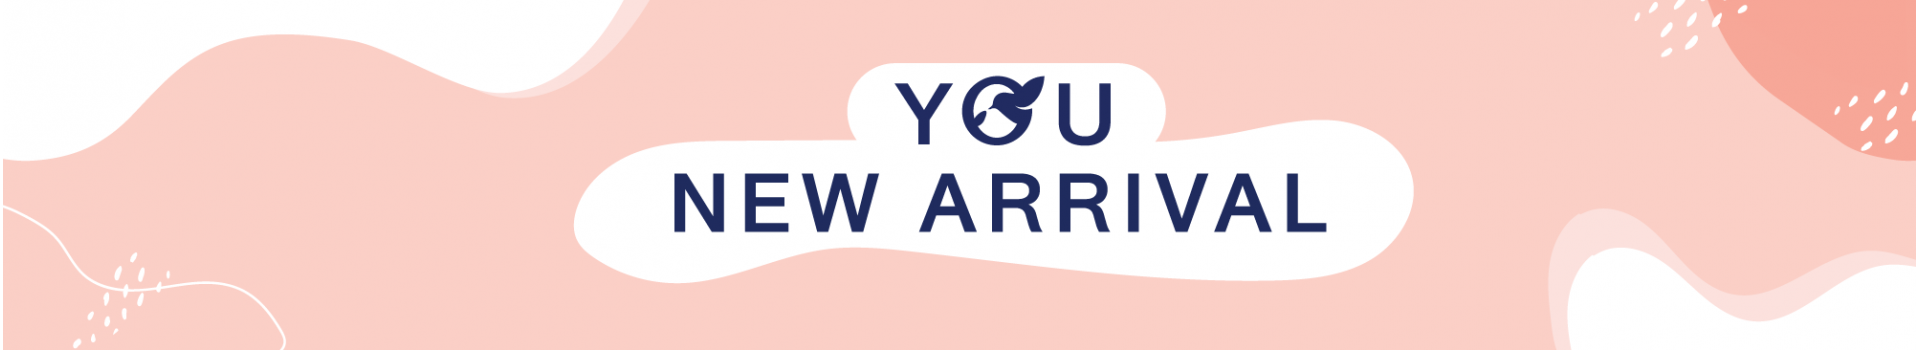 Special for YOU MEMBER